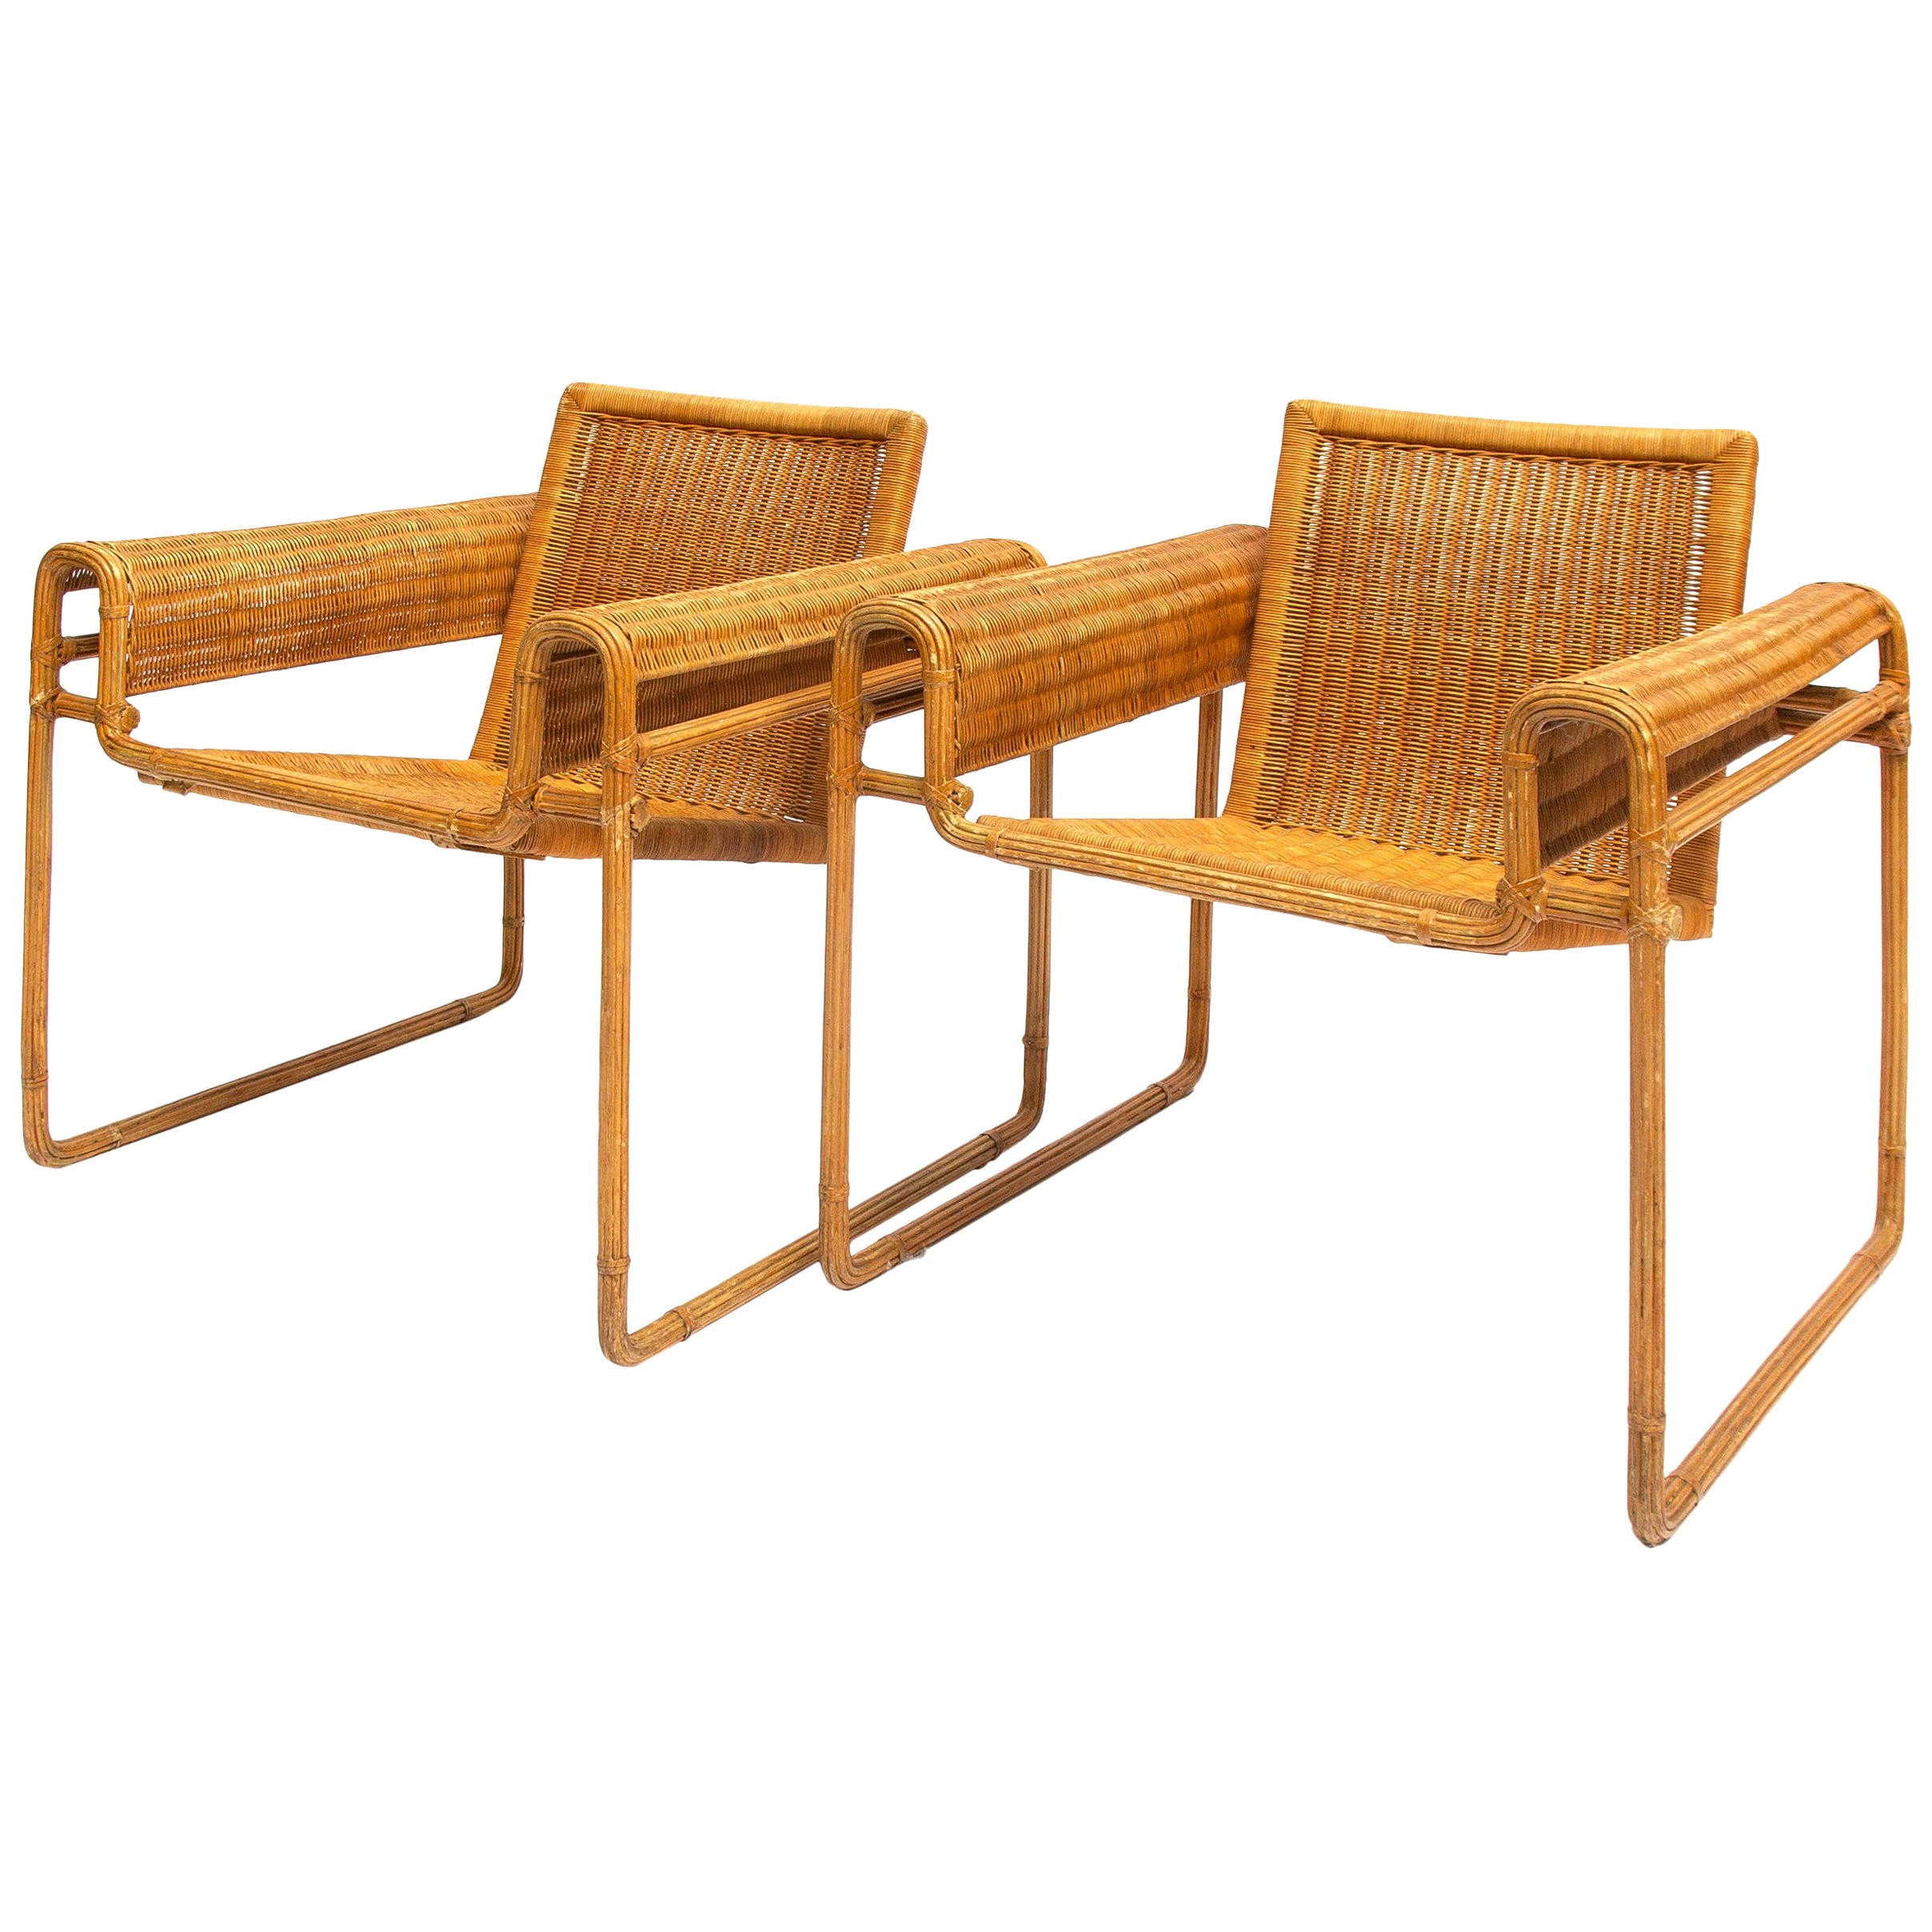 Wicker Chair, Inspired by Marcel Breuer's Wassily Chair, 1970s